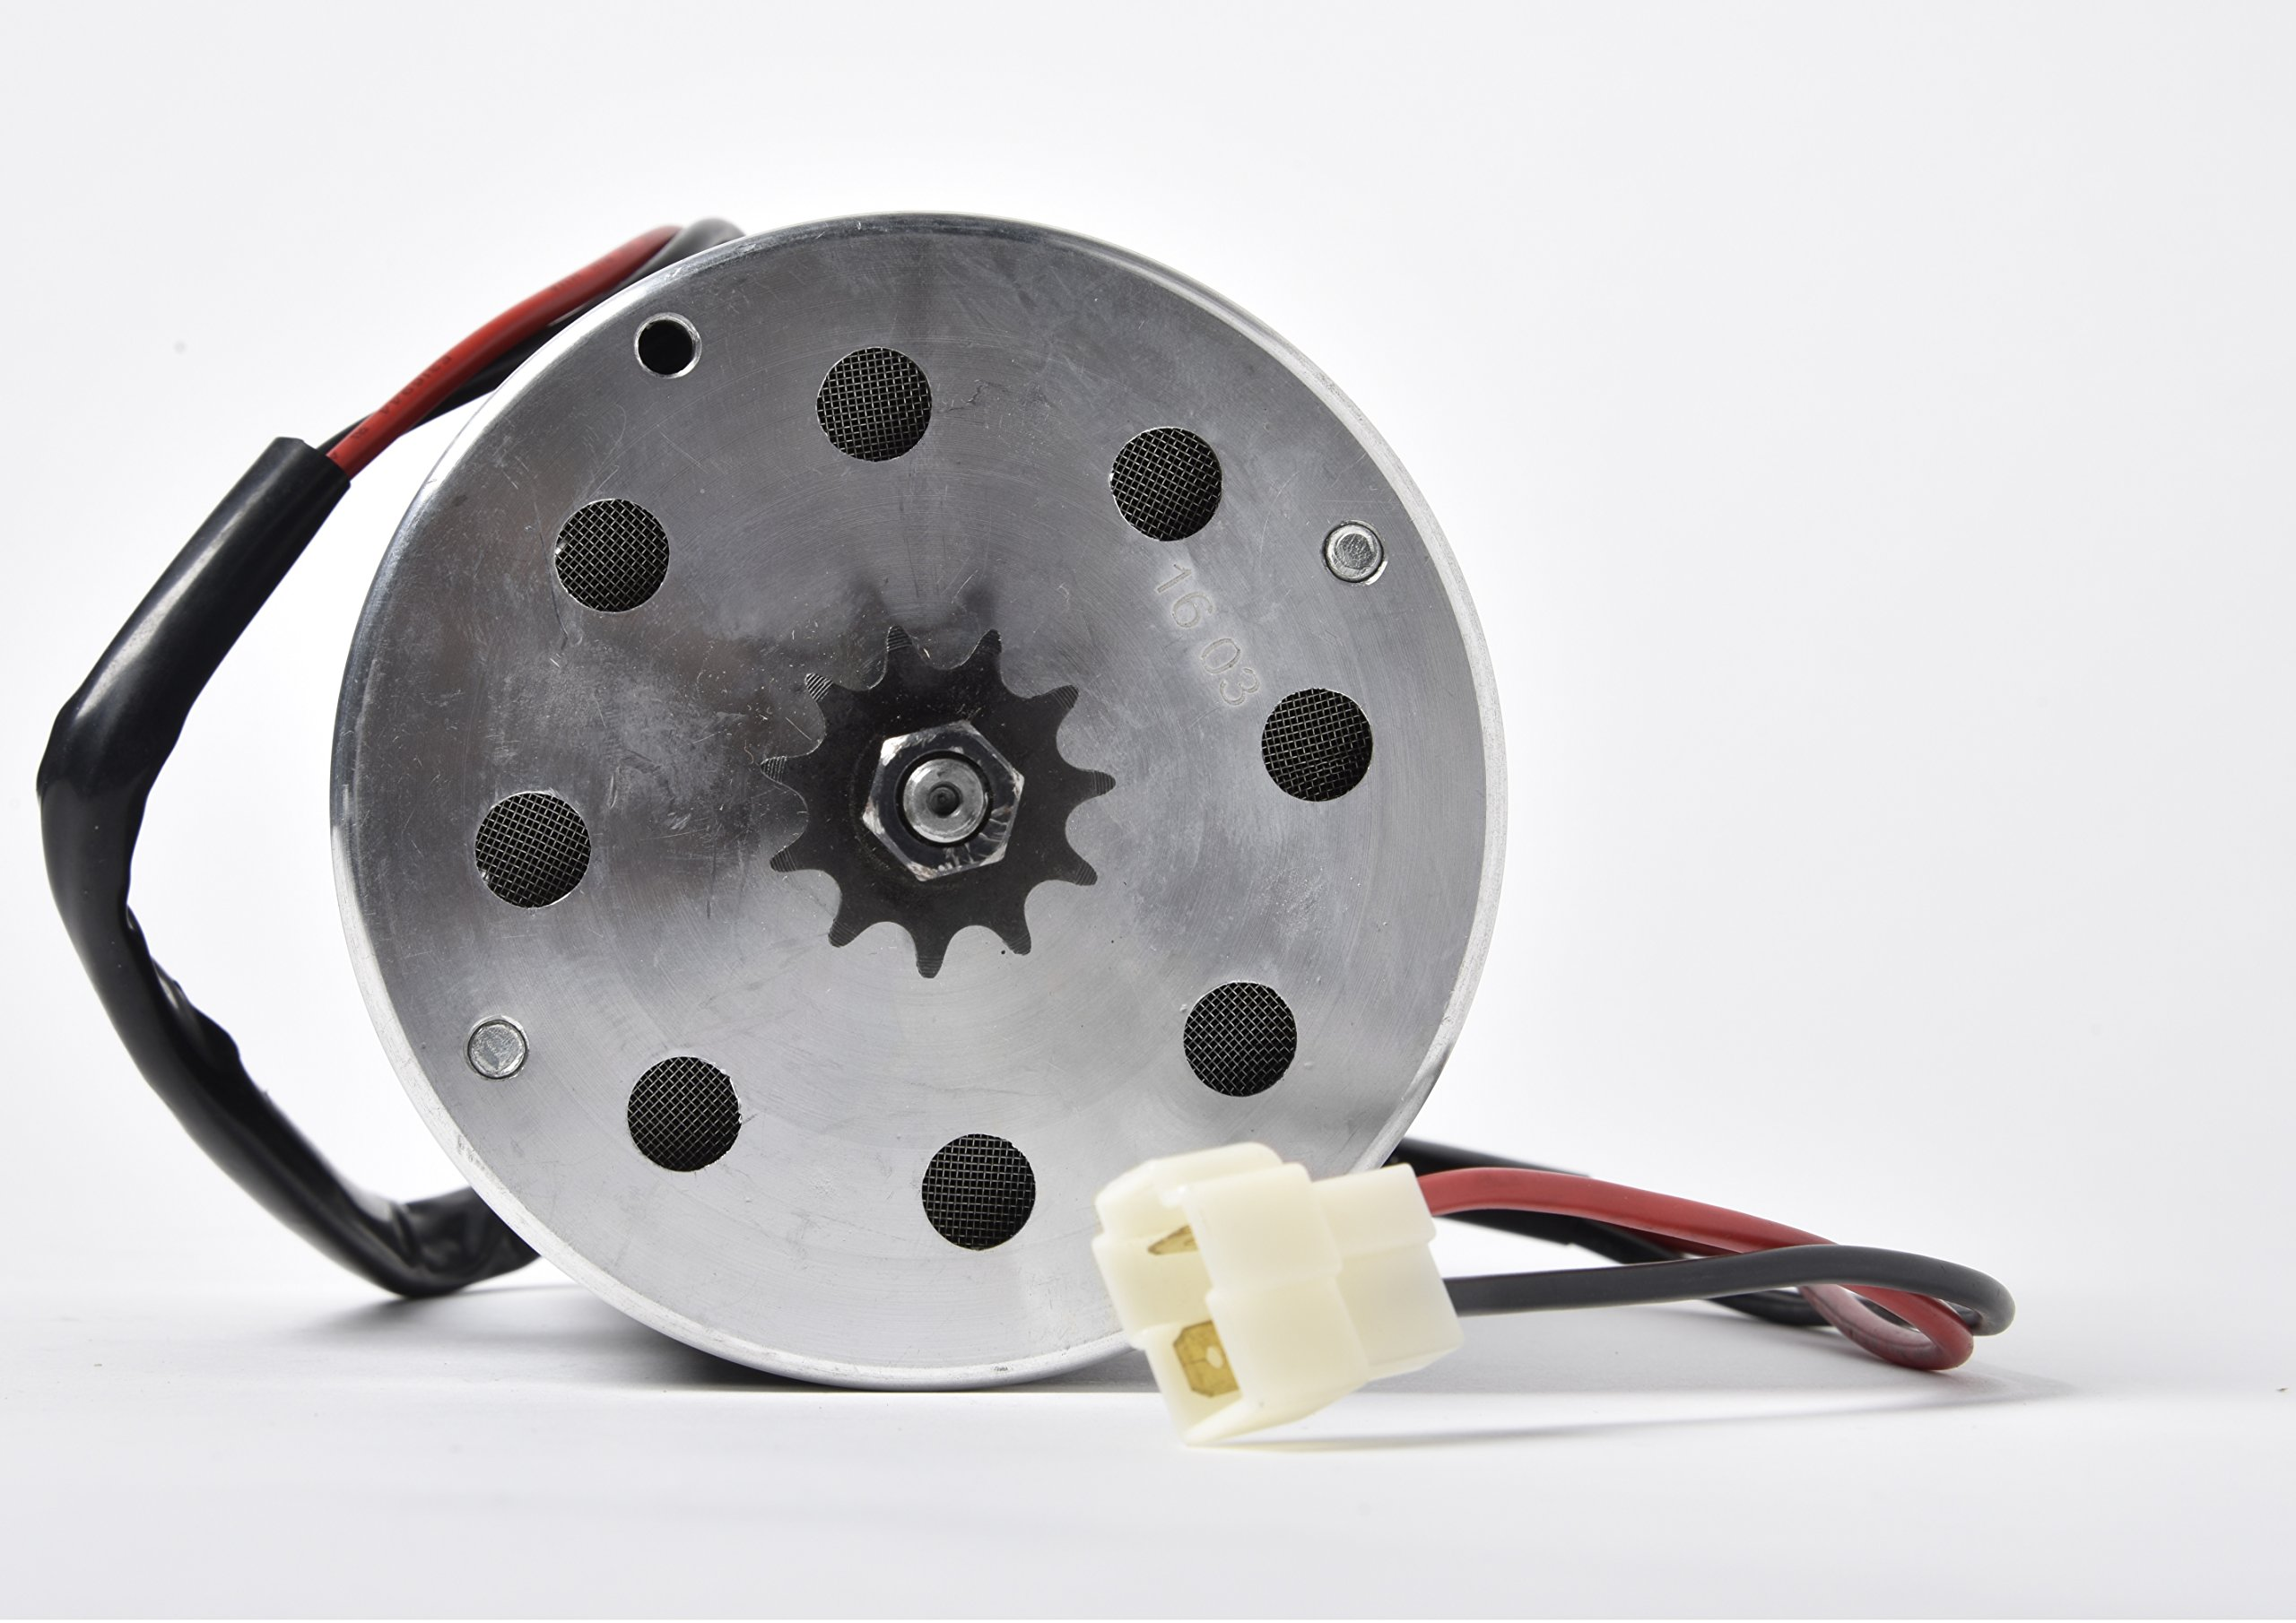 Electric Motor 36 Volt DC 500 Watt 24 Amp for Scooter Bike Go-kart Mini Bikes Model Numbers MY1020 Reversible with 11 teeth sprocket #25 chain 6.35 pitch